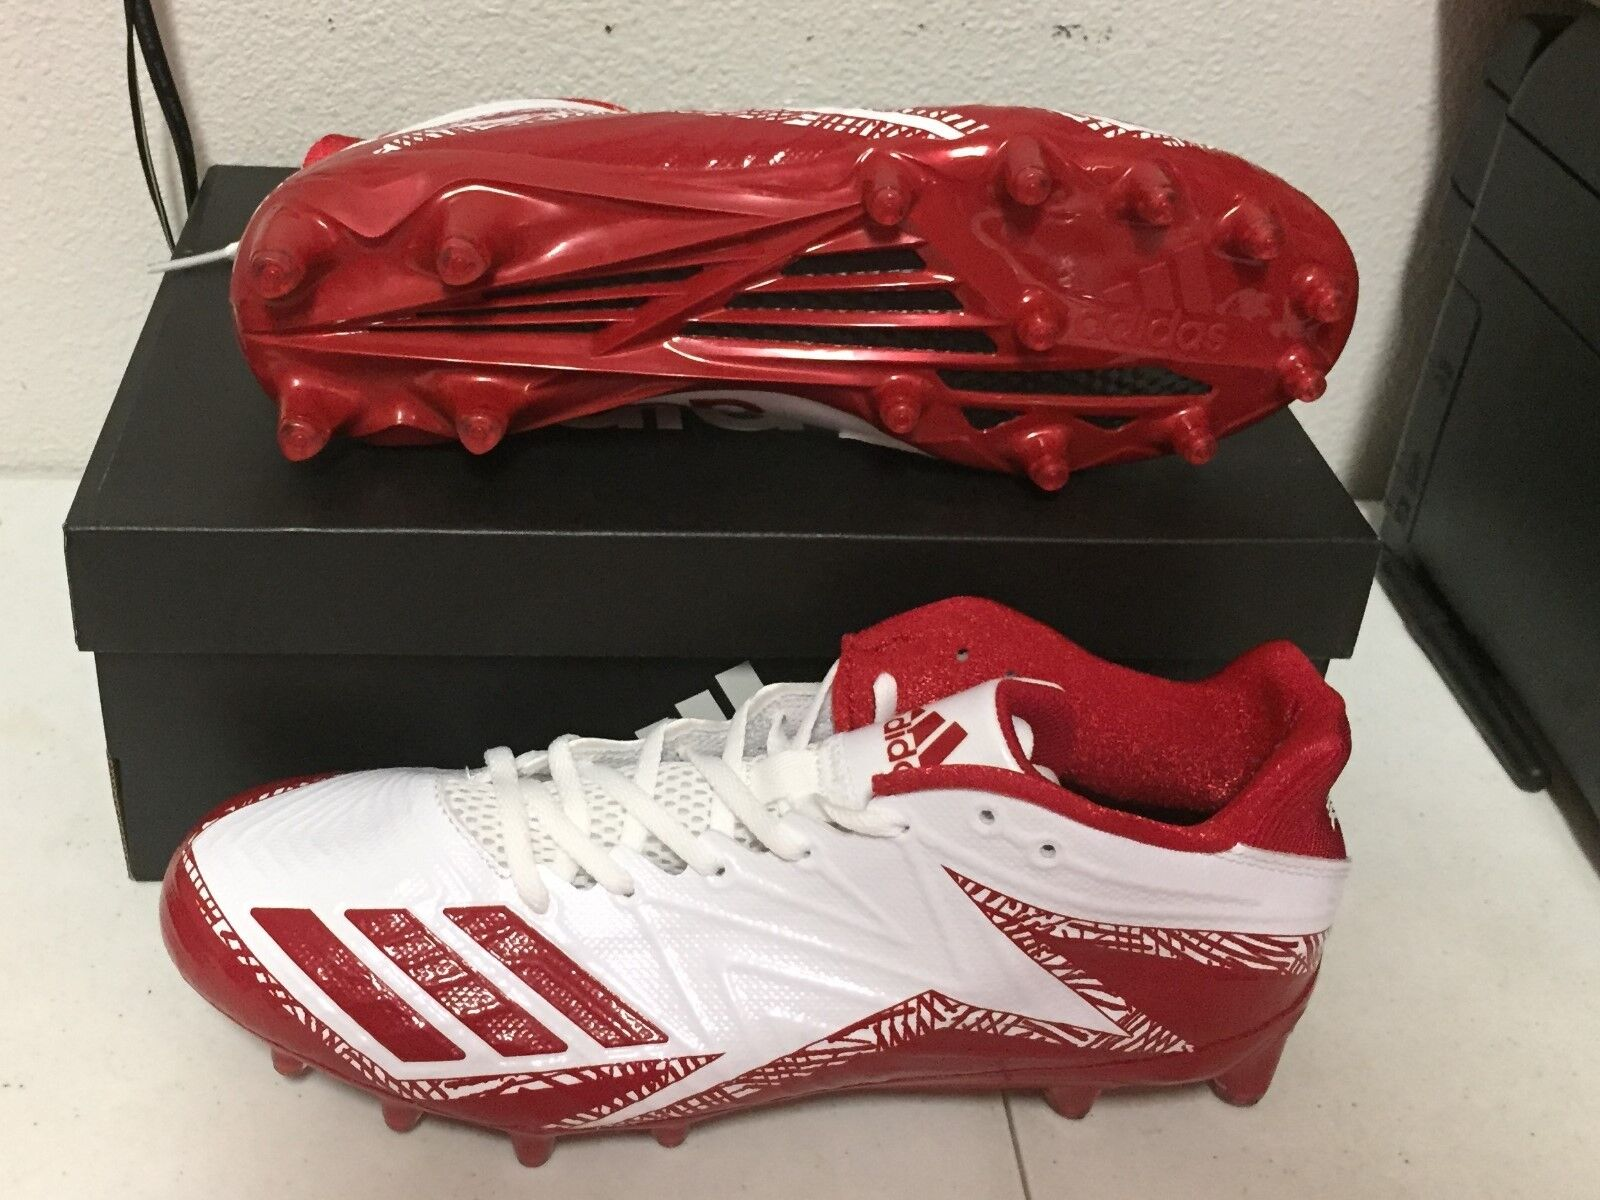 ADIDAS FREAK X CARBON LOW White Red MENS Football Cleats BY3098 NEW